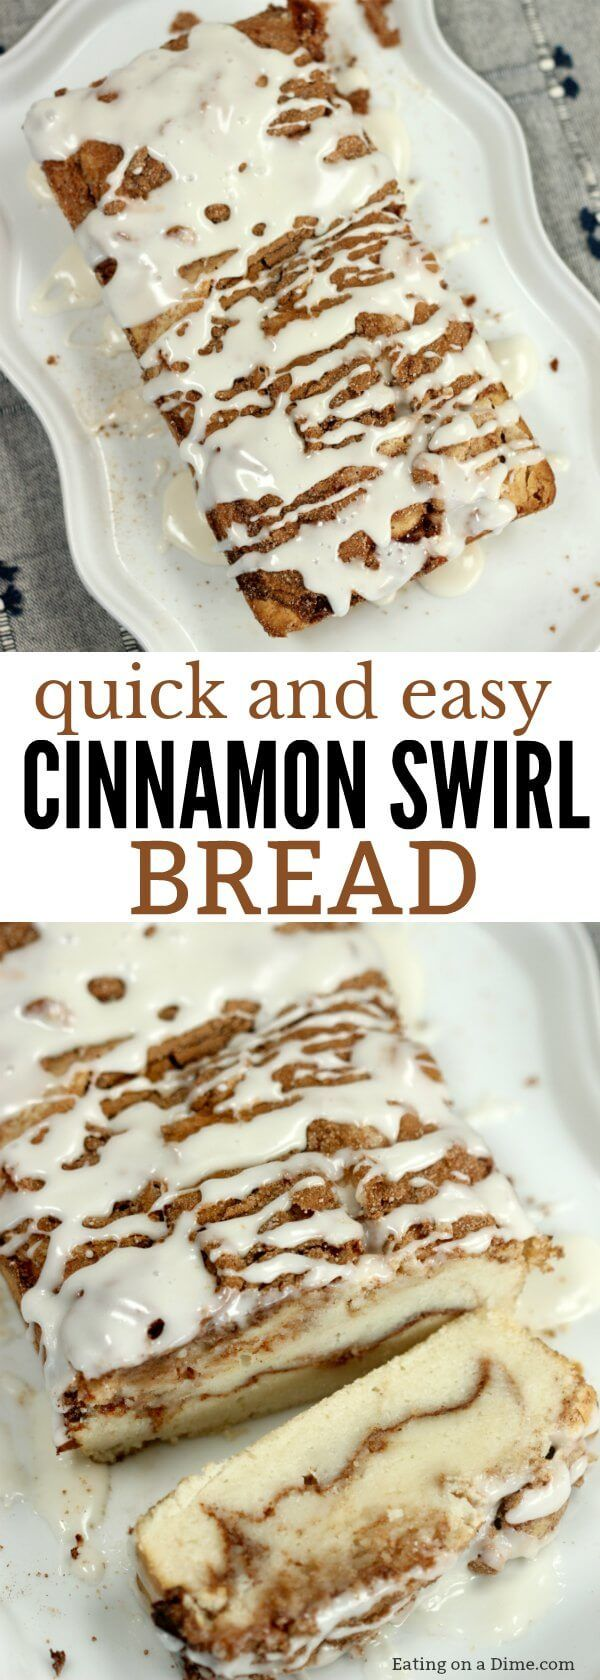 Try this easy Cinnamon Swirl Bread Recipe. You have to make this delicious cinnamon roll bread recipe. It is our favorite cinnamon bread recipe.